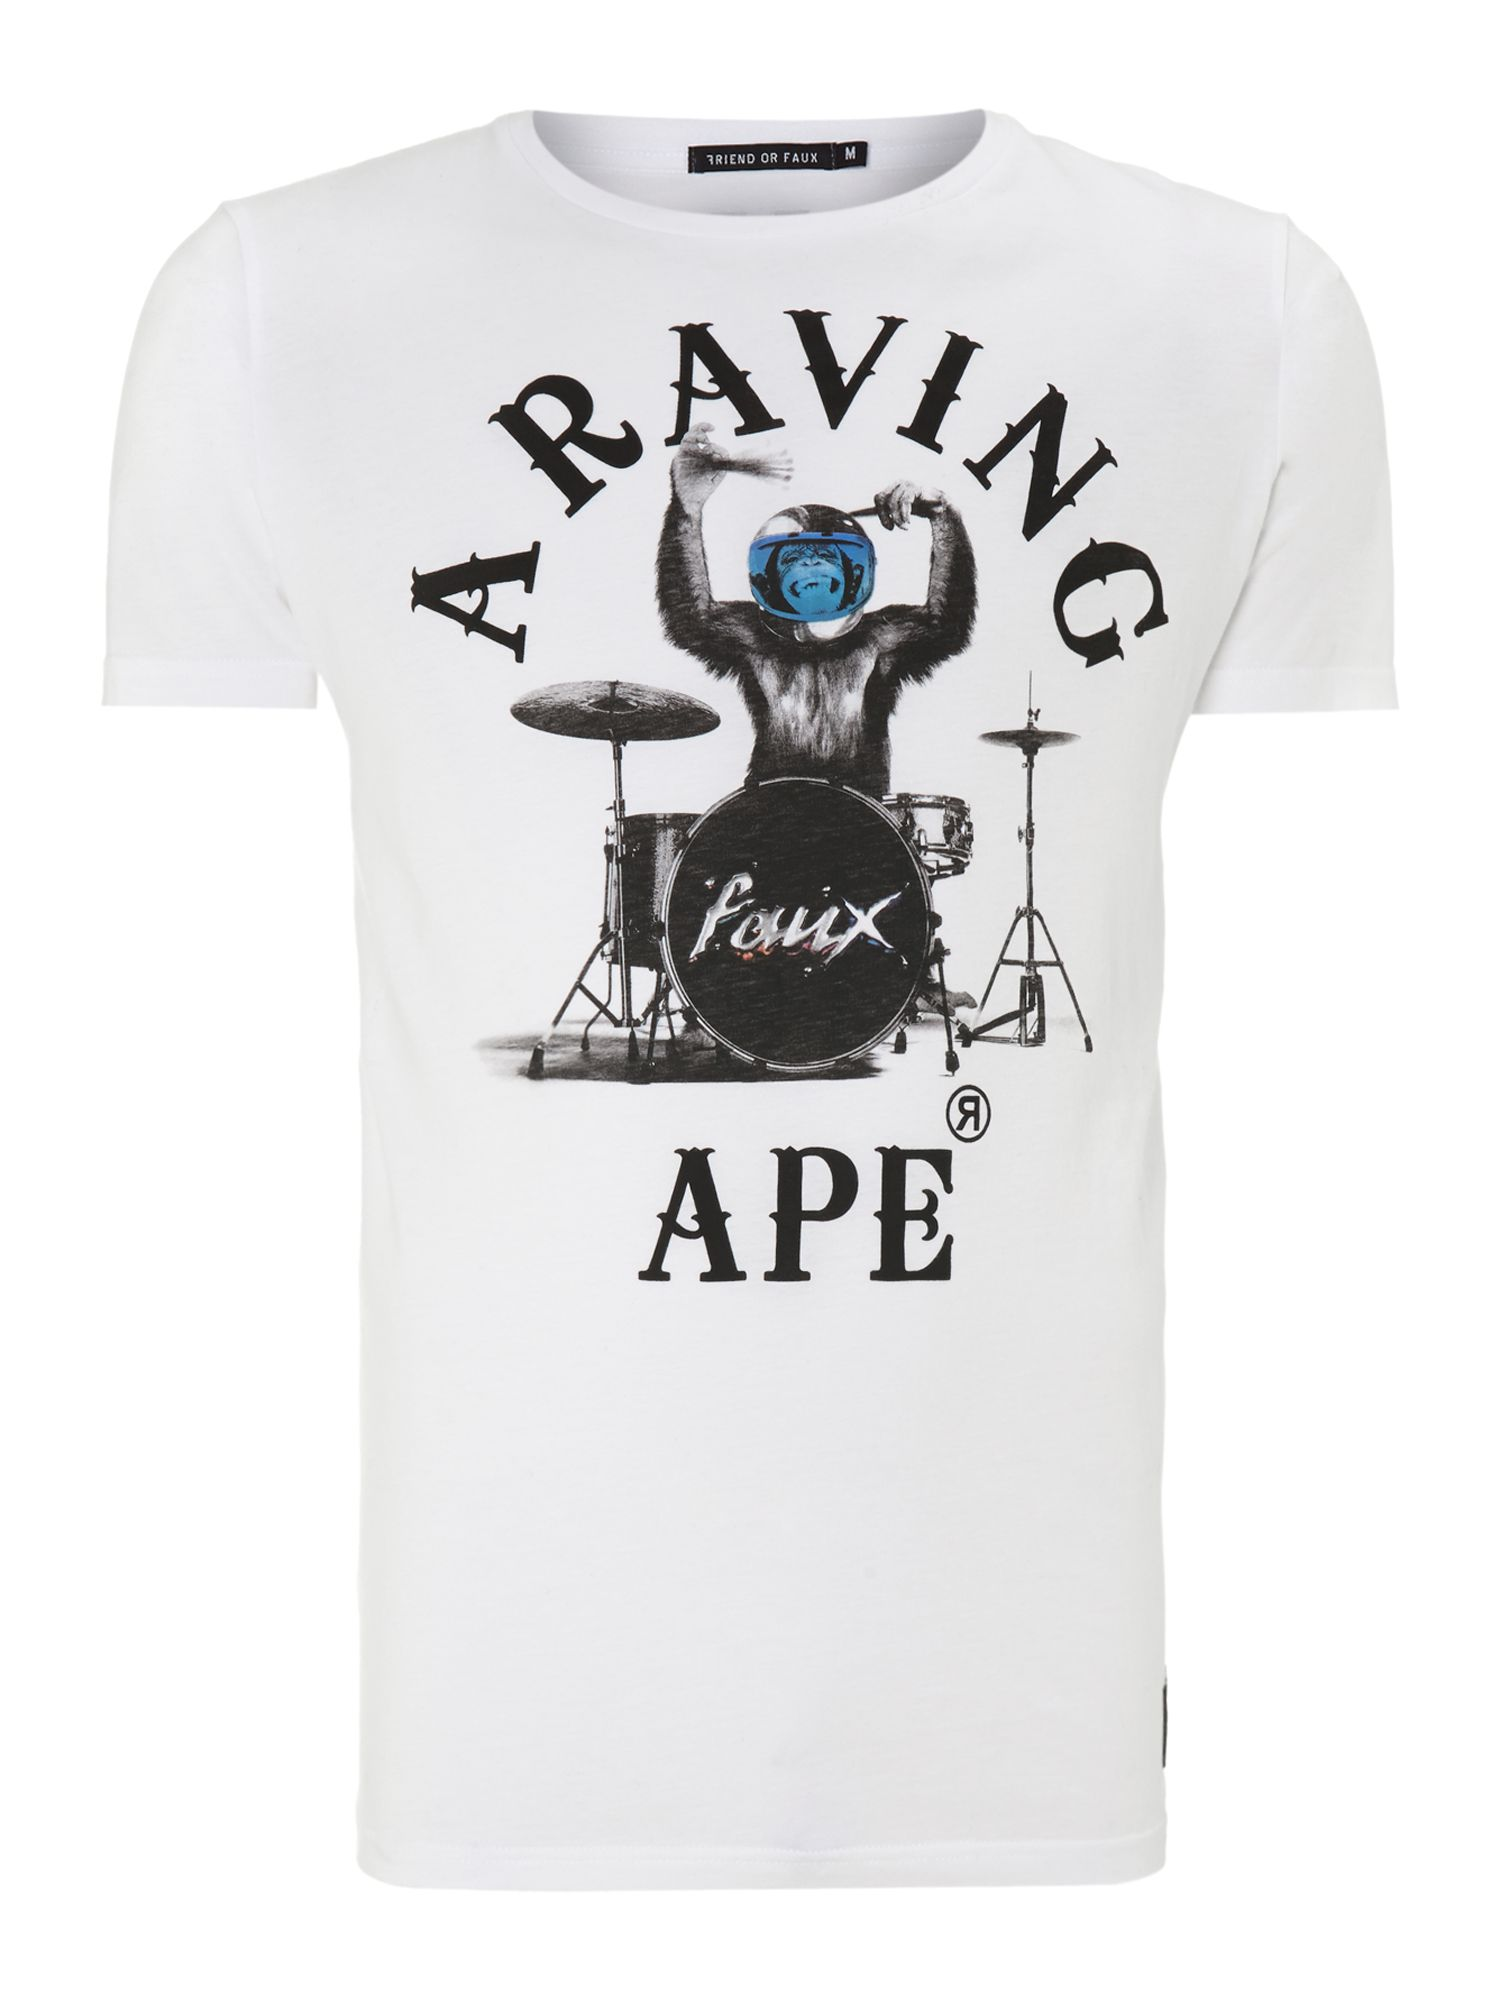 Raving apre print t-shirt